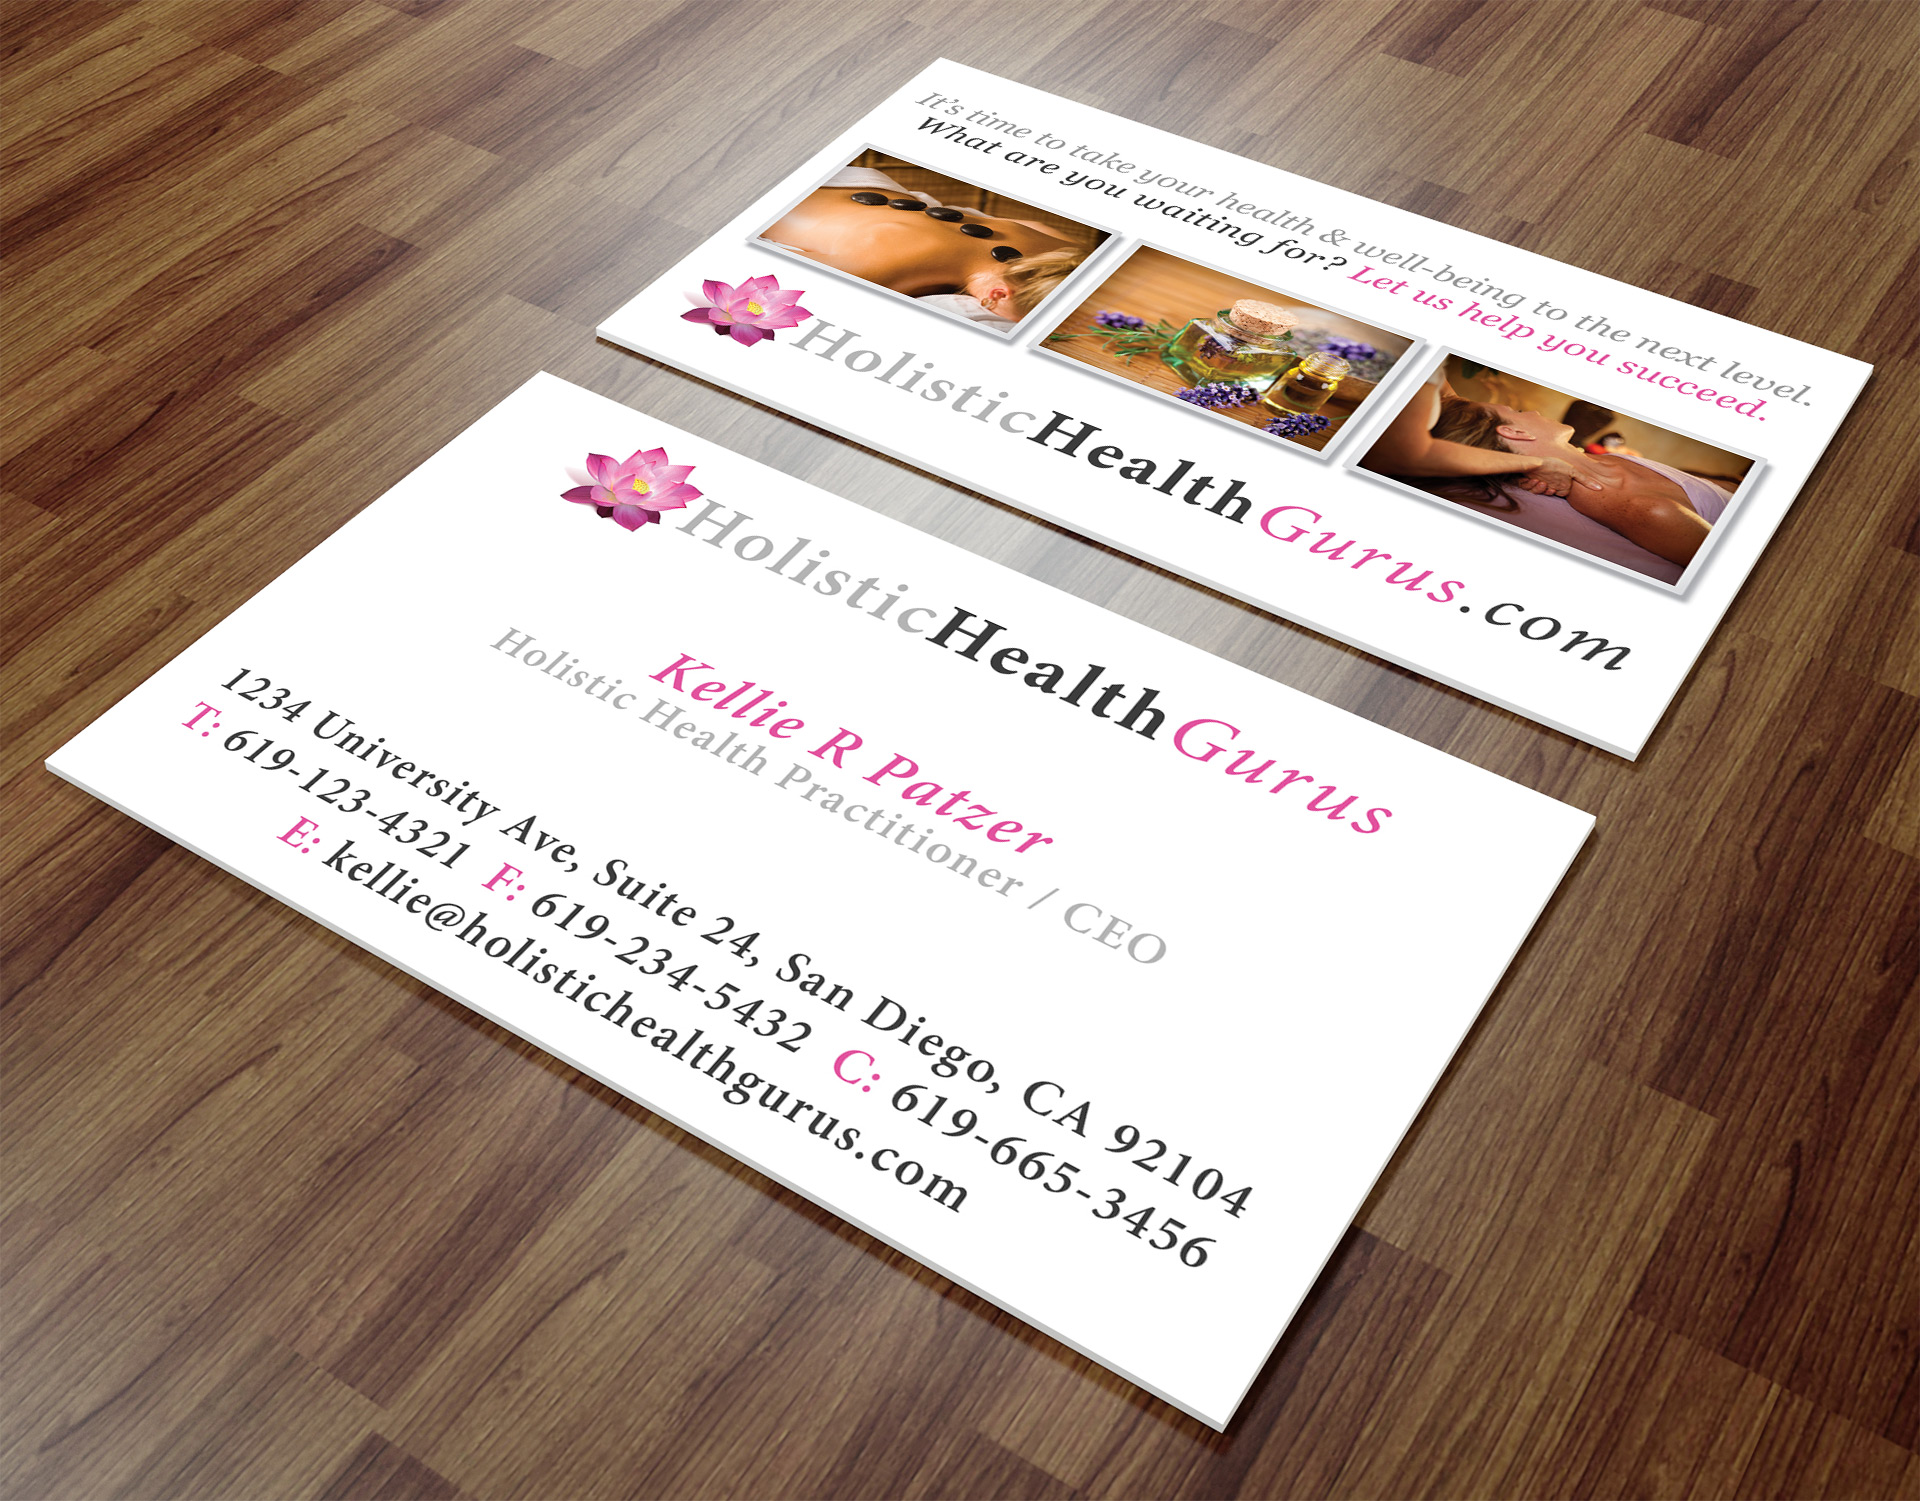 Holistic health gurus business cards emoforma we bring your holistic health gurus business cards emoforma we bring your stories to life web design video production motion graphics 2d 3d animation logos business colourmoves